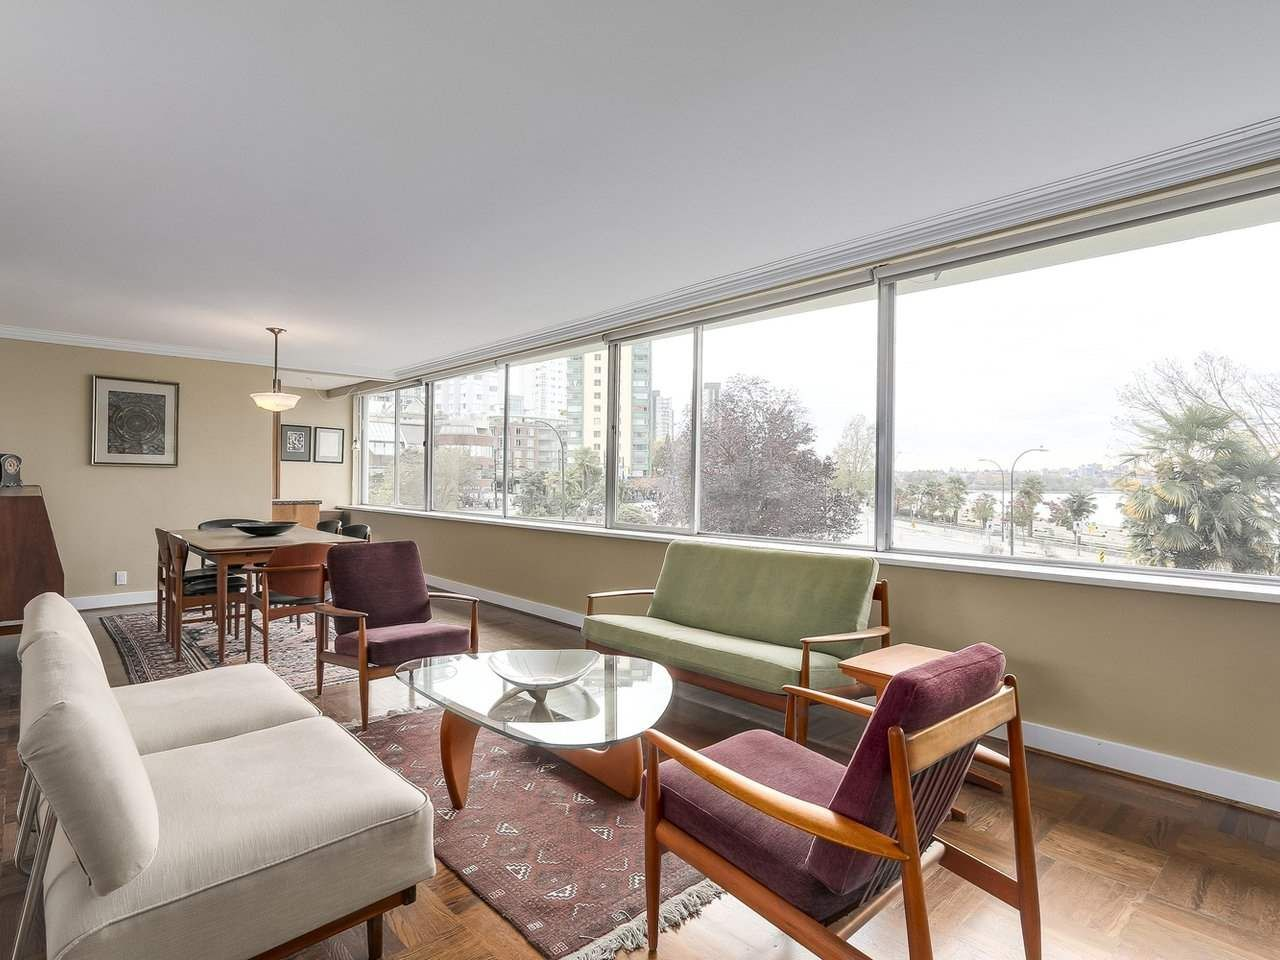 Main Photo: 204 1835 MORTON Avenue in Vancouver: West End VW Condo for sale (Vancouver West)  : MLS®# R2219618